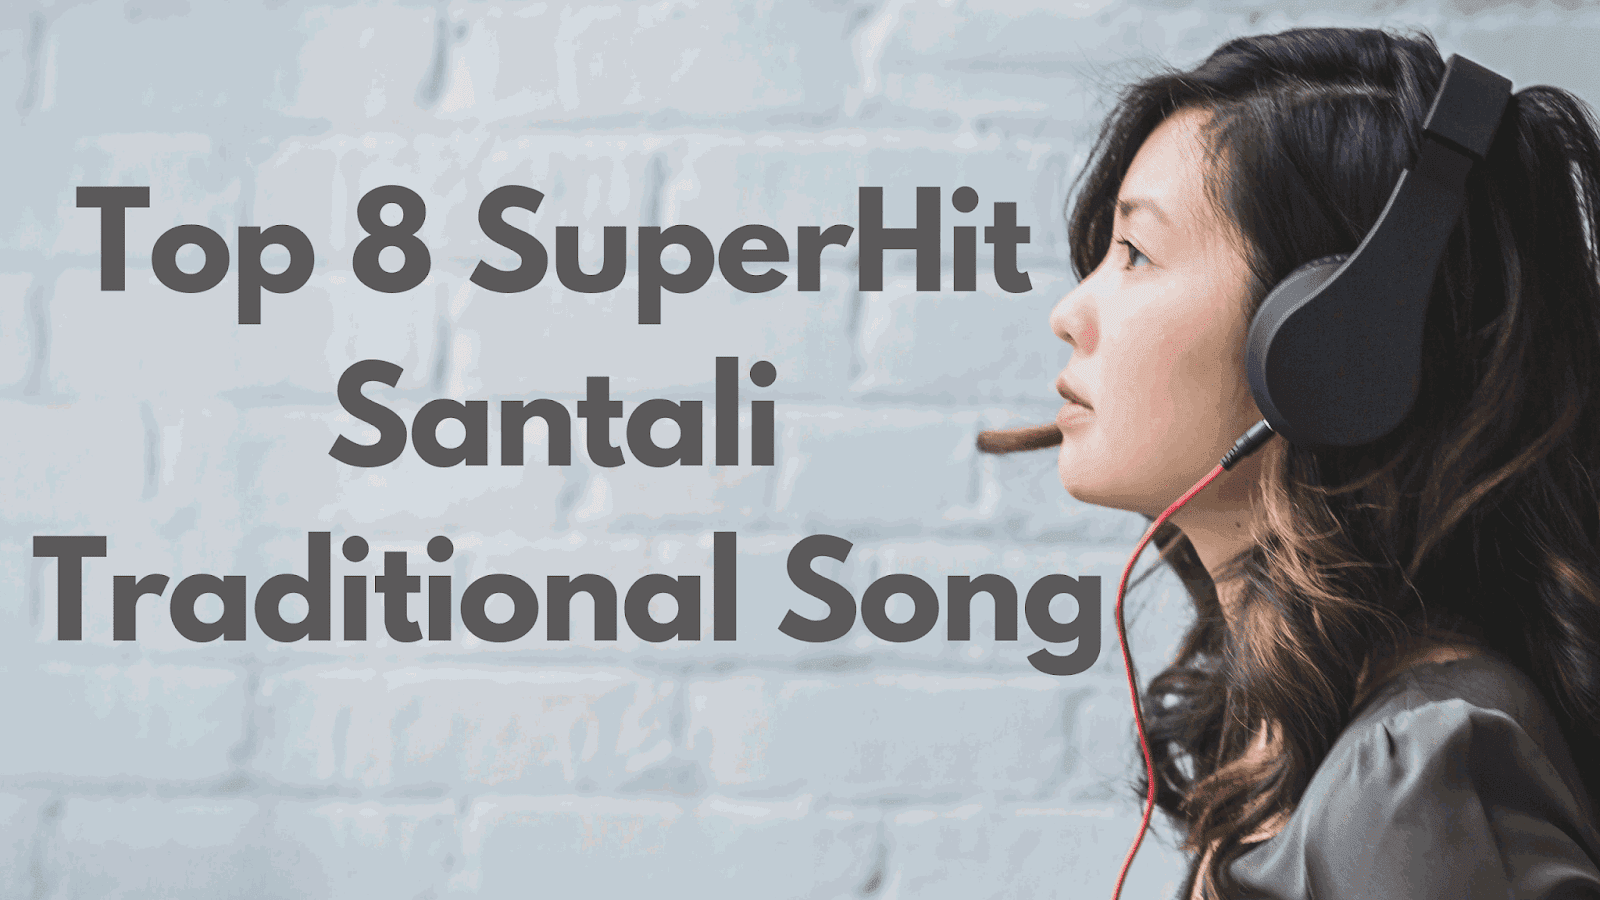 Top 8 Superhit Traditional Santali Song